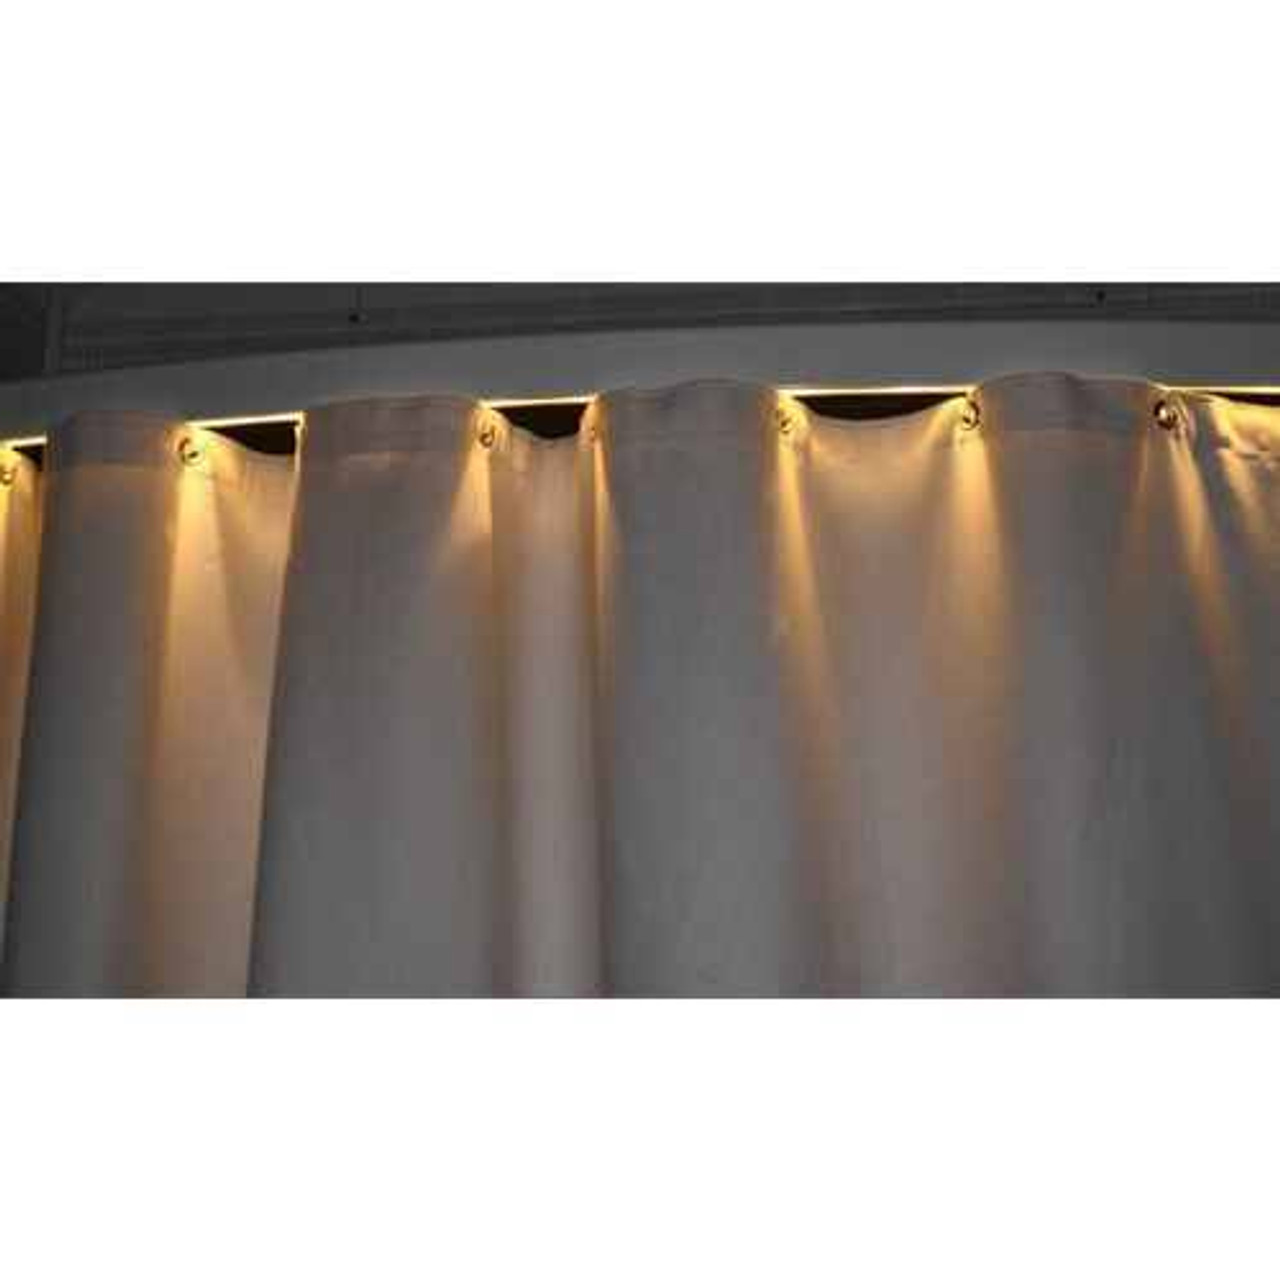 Kartri KARTRIor ULTIMATEor LIGHTED SHOWER BAR 60 WIDE BOWS 5 WHITE OR BEIGE PACK OF 12